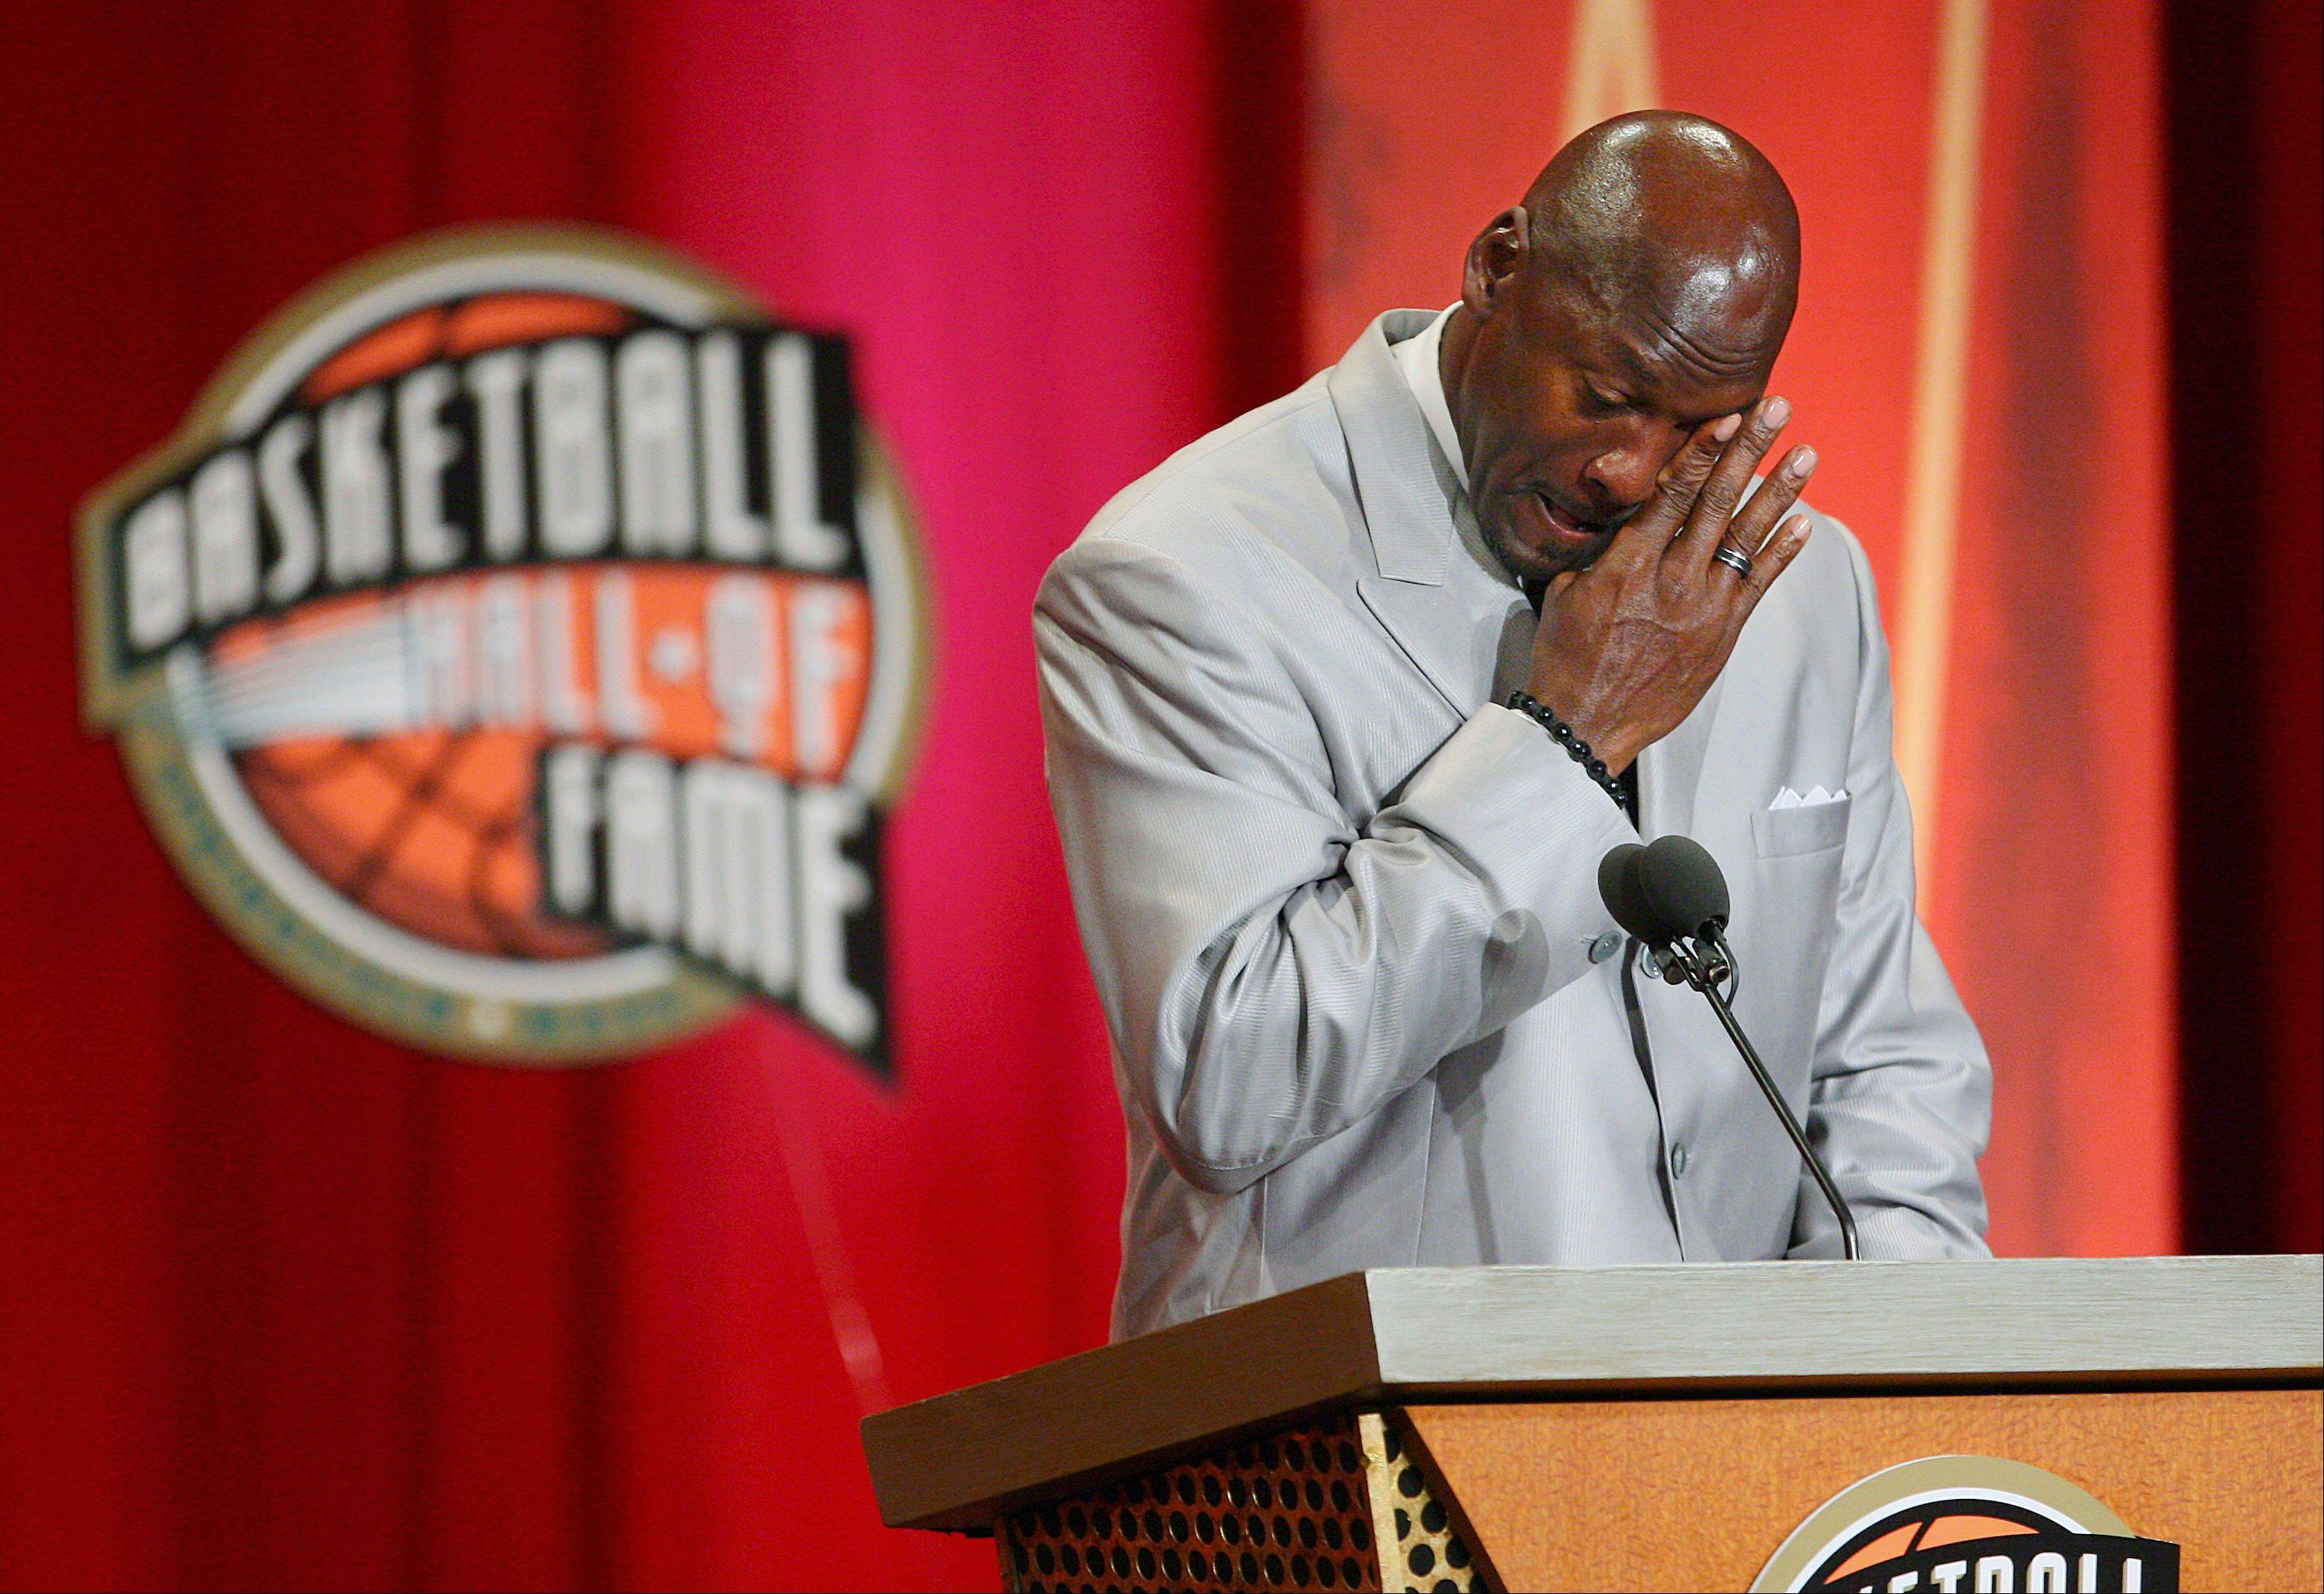 Former Chicago Bulls and Washington Wizards guard Michael Jordan wipes tears from his eyes as he prepares to deliver his address during his enshrinement ceremony into the Naismith Basketball Hall of Fame in Springfield, Mass., Friday, Sept. 11, 2009.